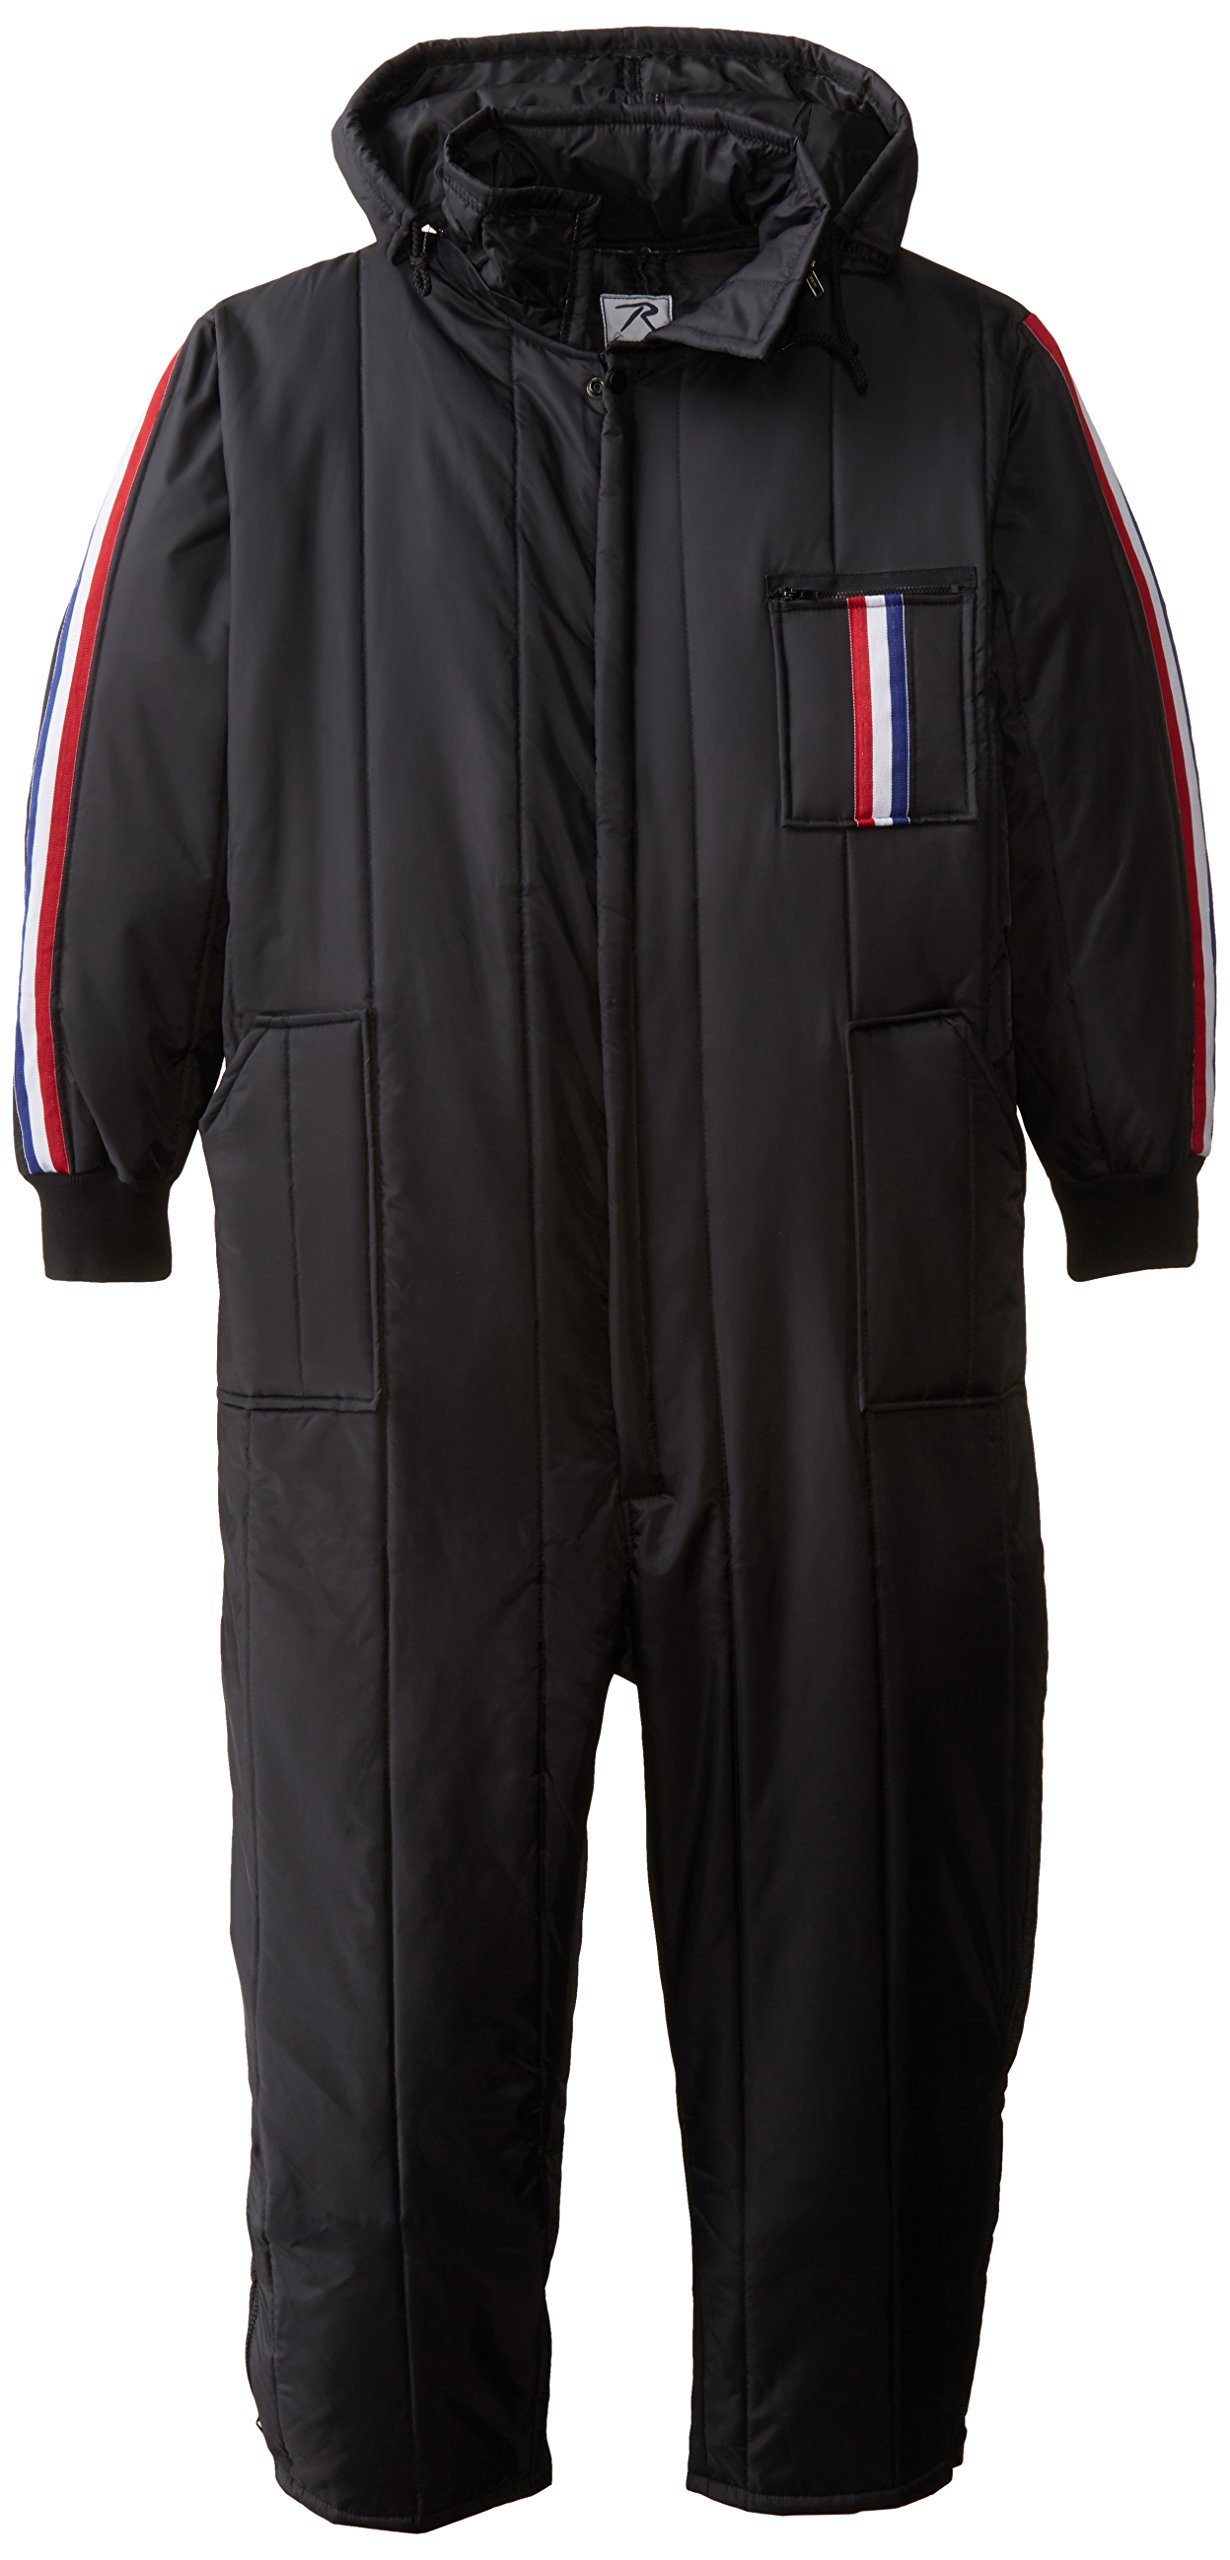 Rothco Ski and Rescue Suit (Small)